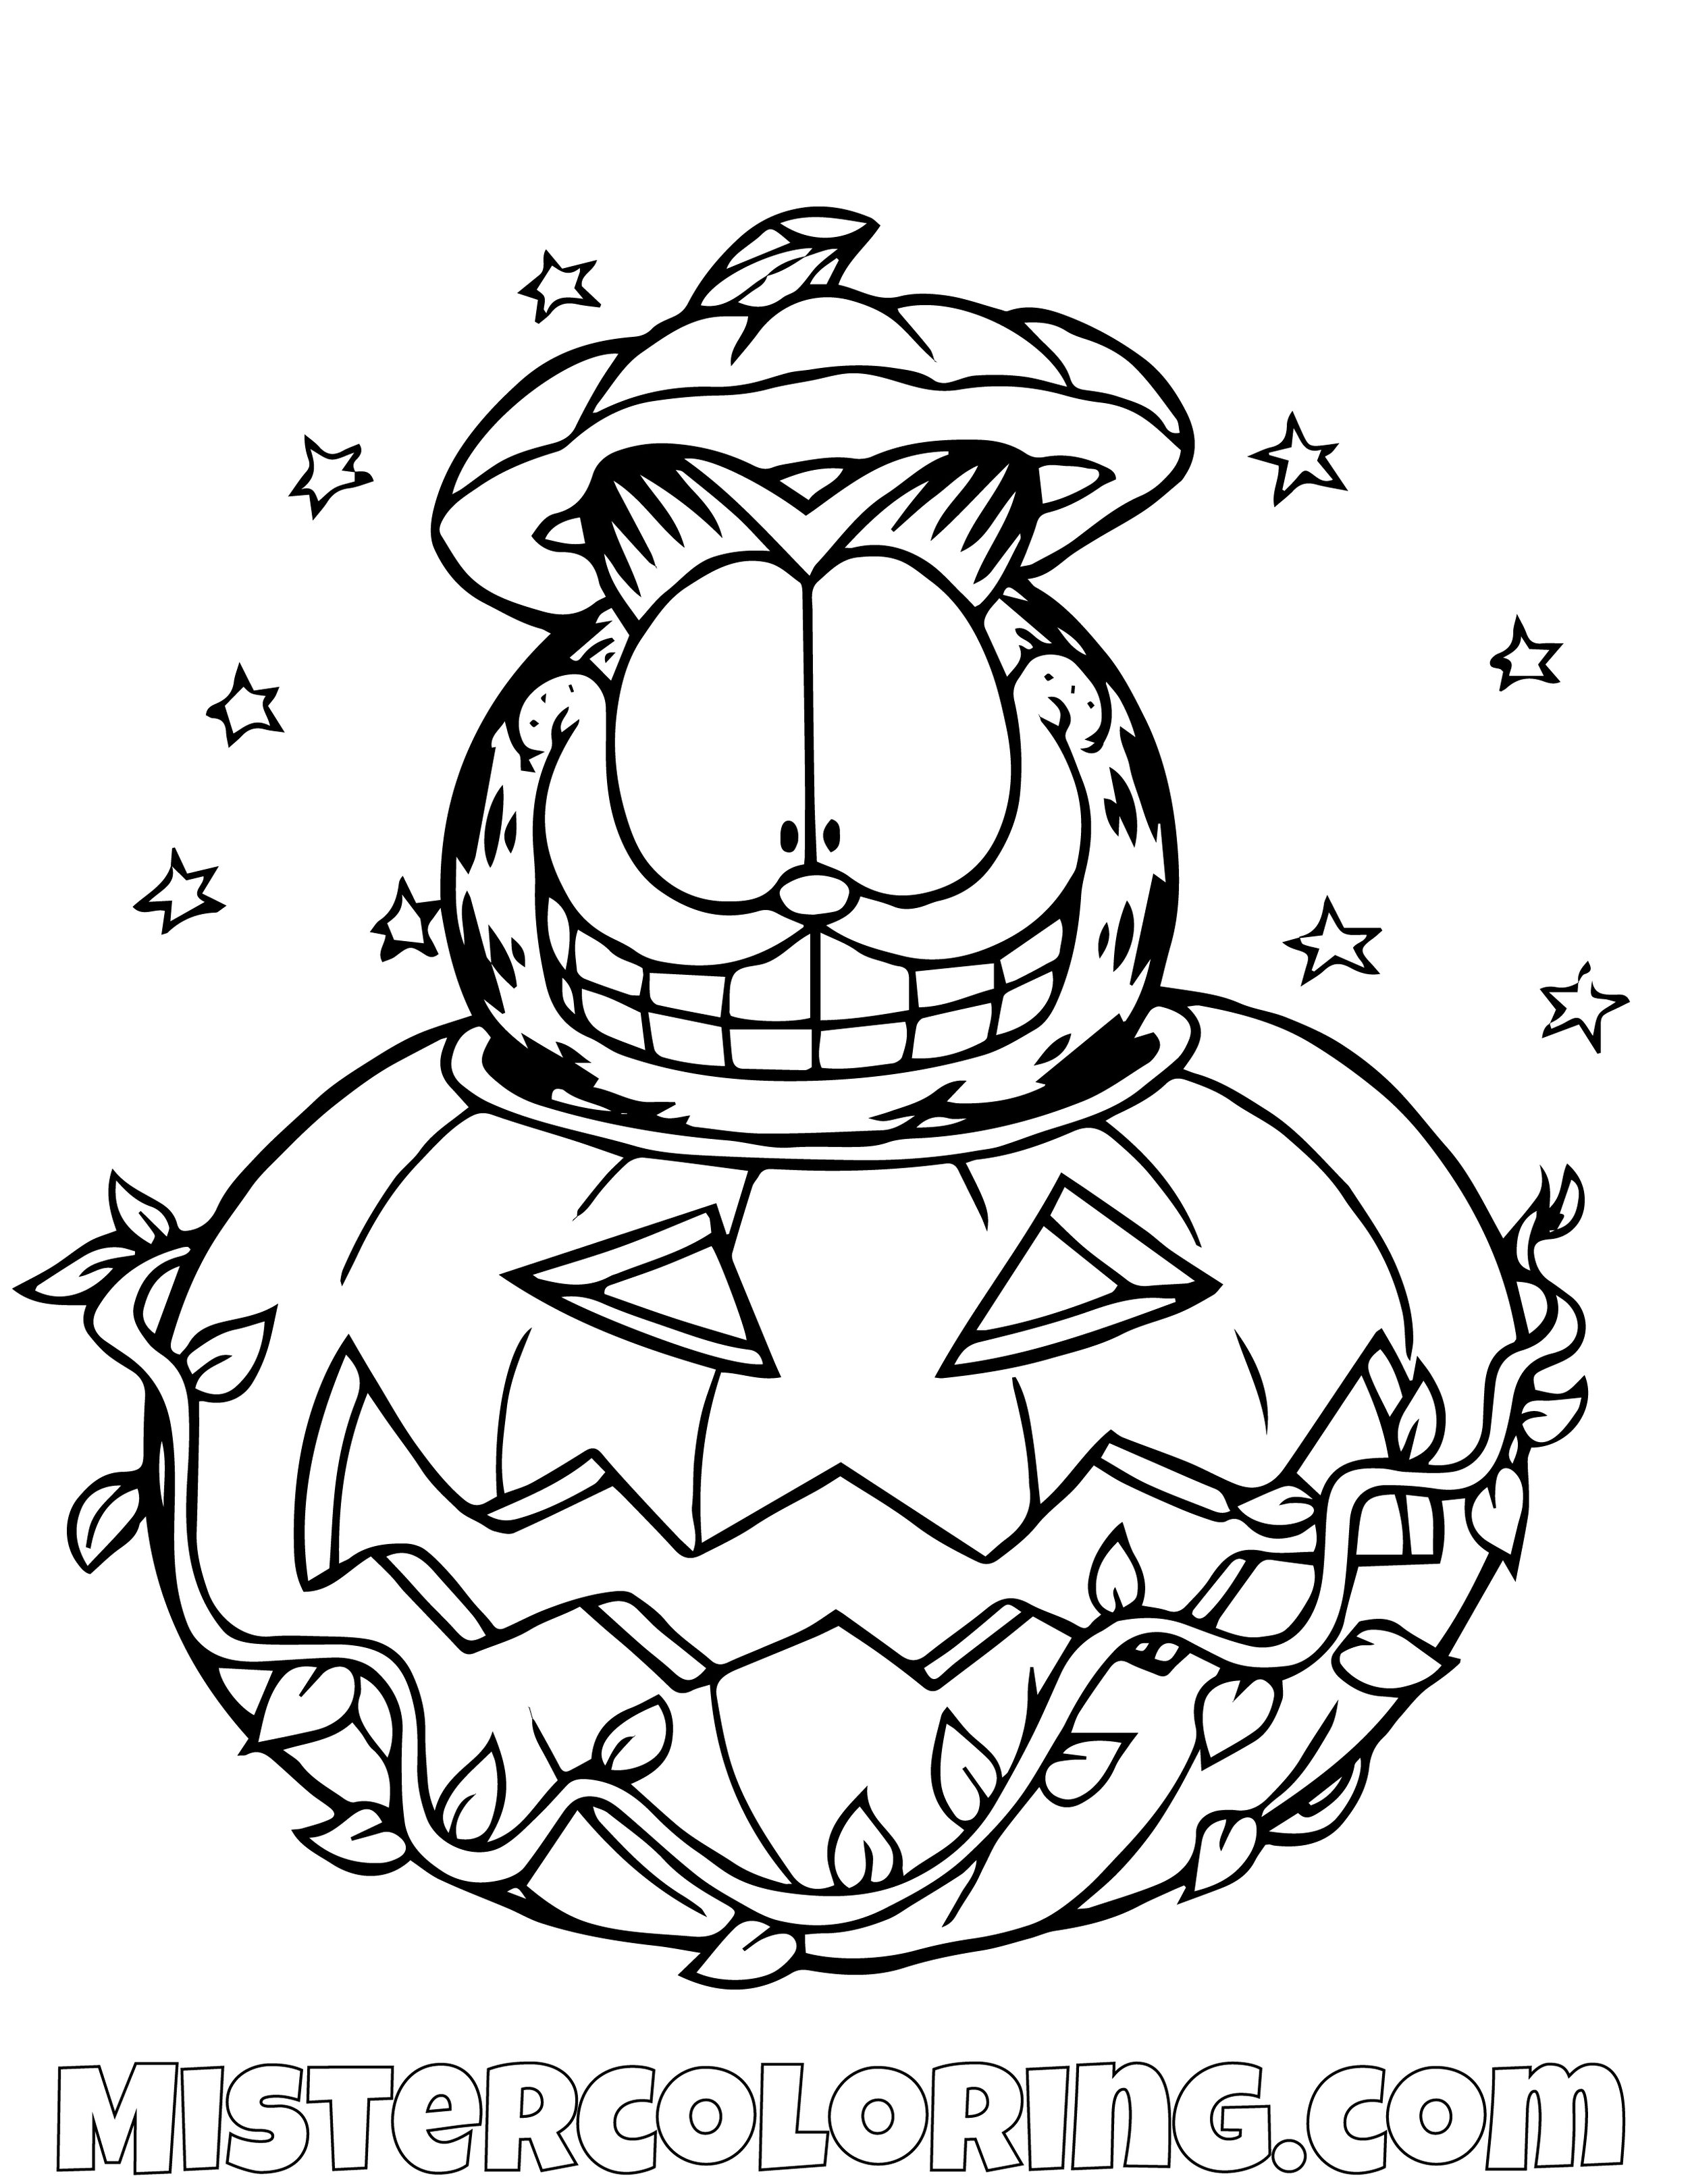 Garfield Hiding In Halloween Pumpkin Coloring Page